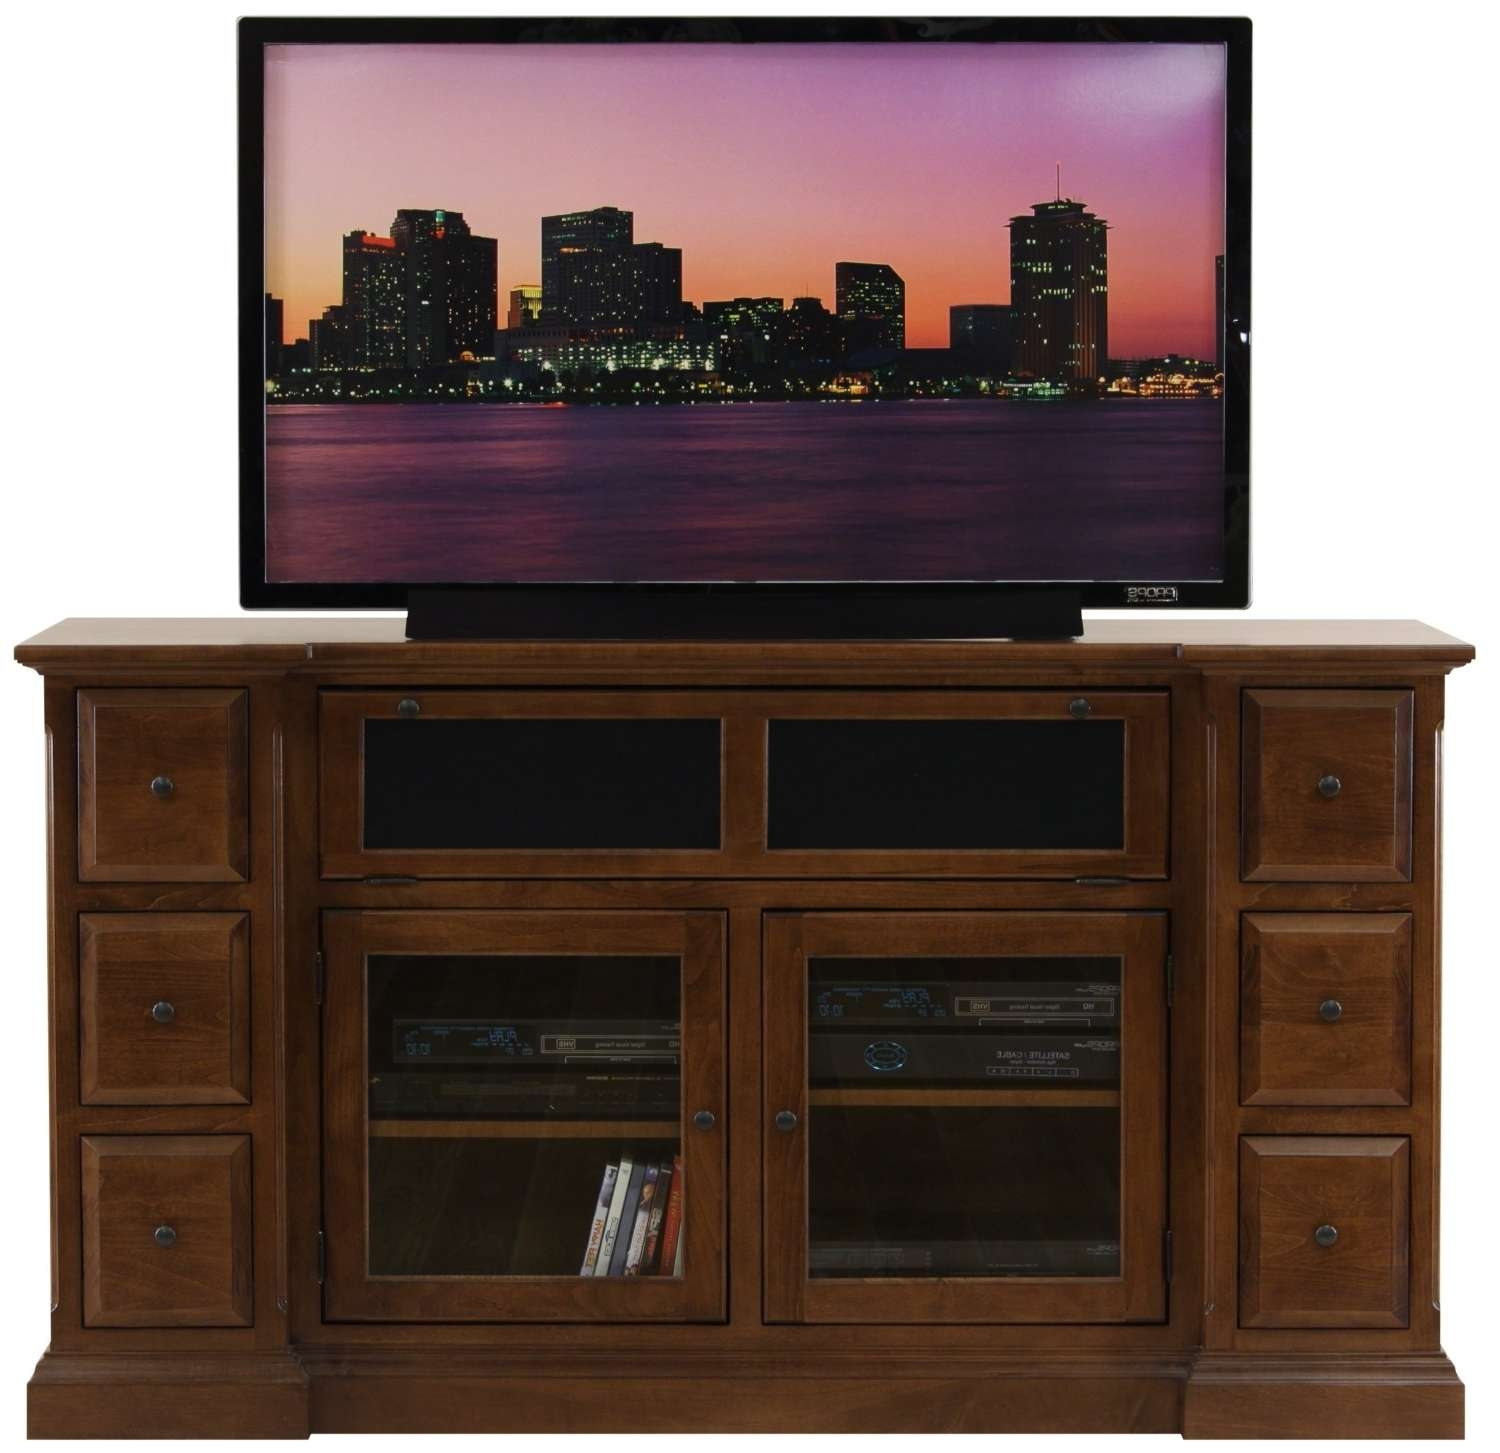 Marvelous Ideas Tv Stand Cabinet Wall Units Amazing Walmart Pertaining To Cheap Oak Tv Stands (View 8 of 15)